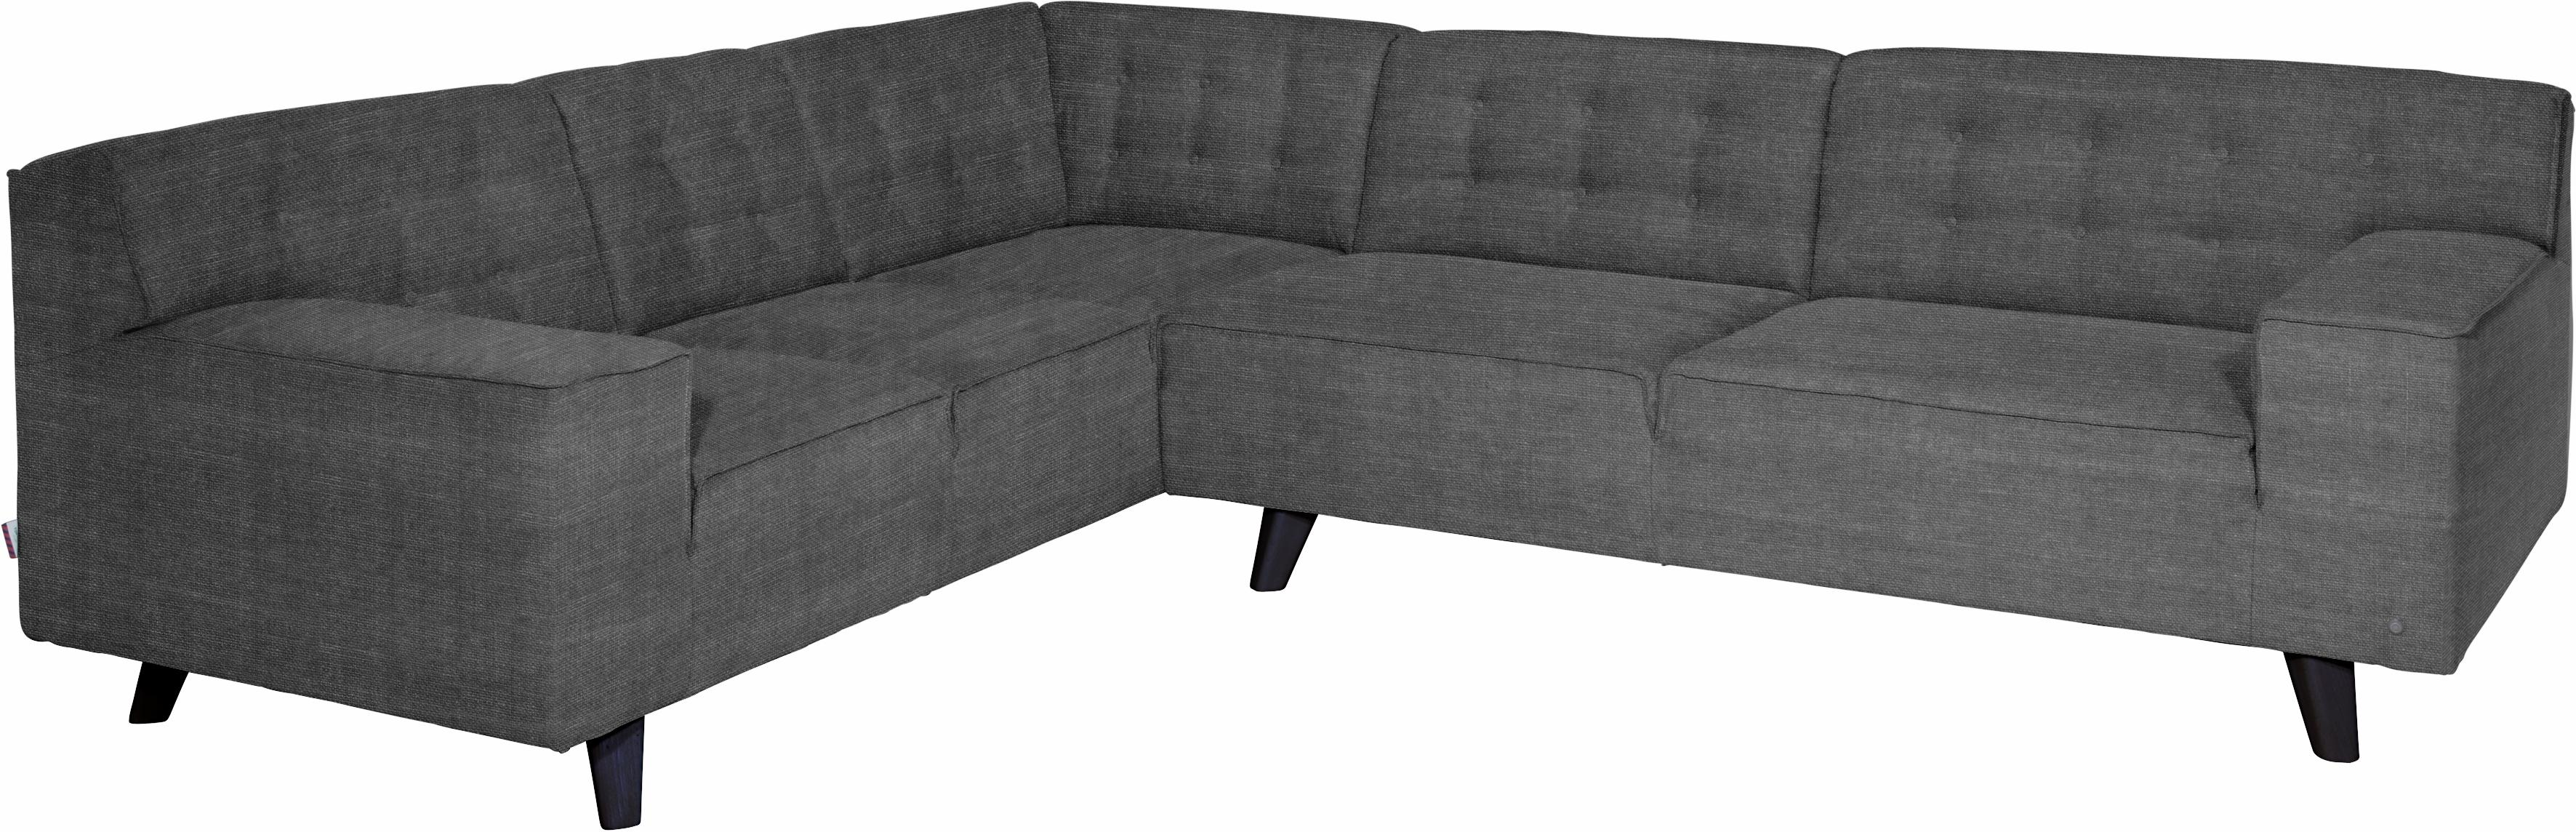 TOM TAILOR Ecksofa NORDIC CHIC